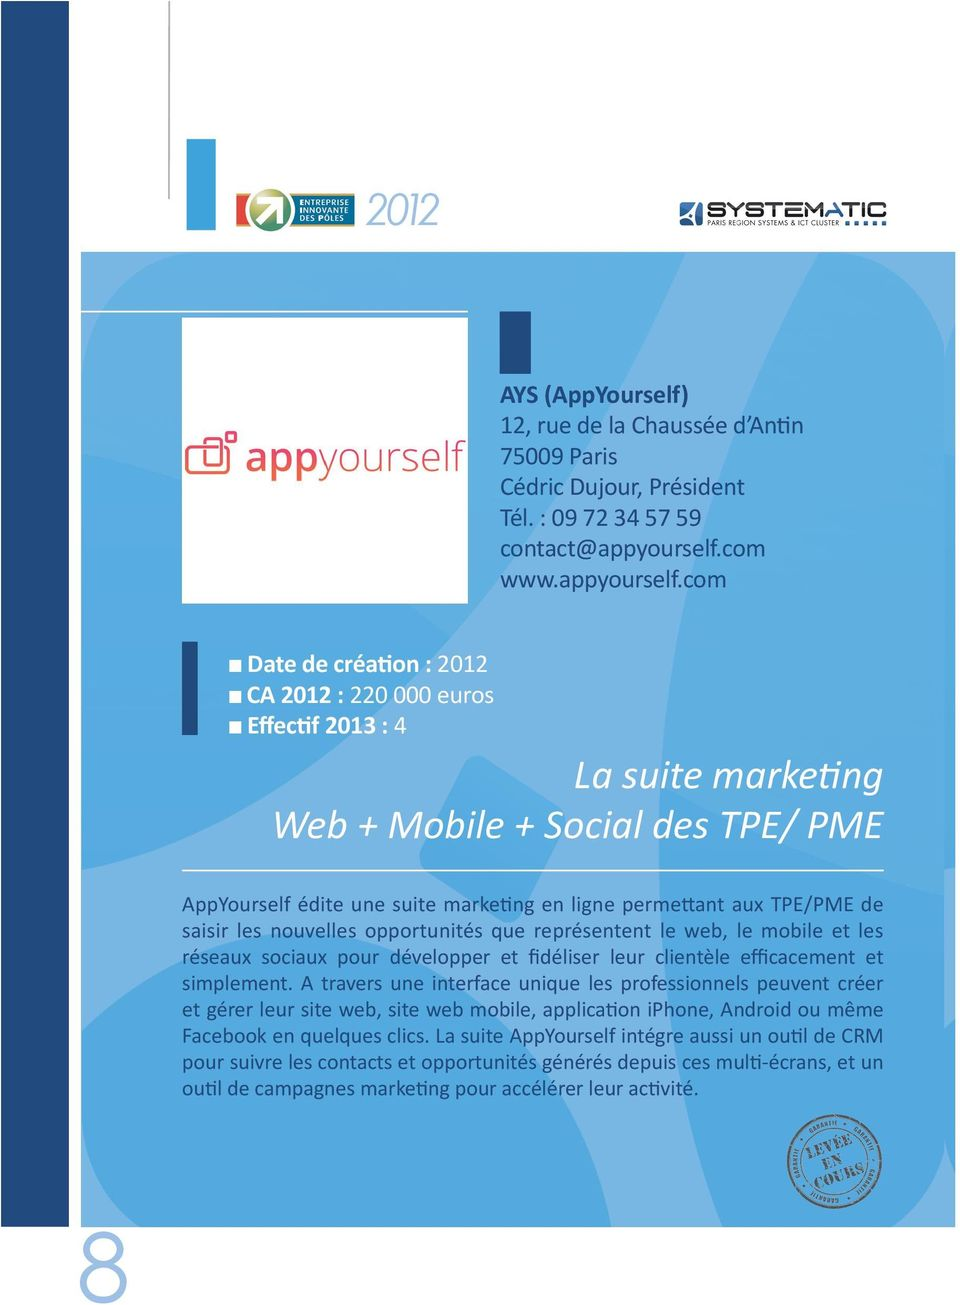 com n Date de création : 2012 n CA 2012 : 220 000 euros n Effectif 2013 : 4 La suite marketing Web + Mobile + Social des TPE/ PME AppYourself édite une suite marketing en ligne permettant aux TPE/PME